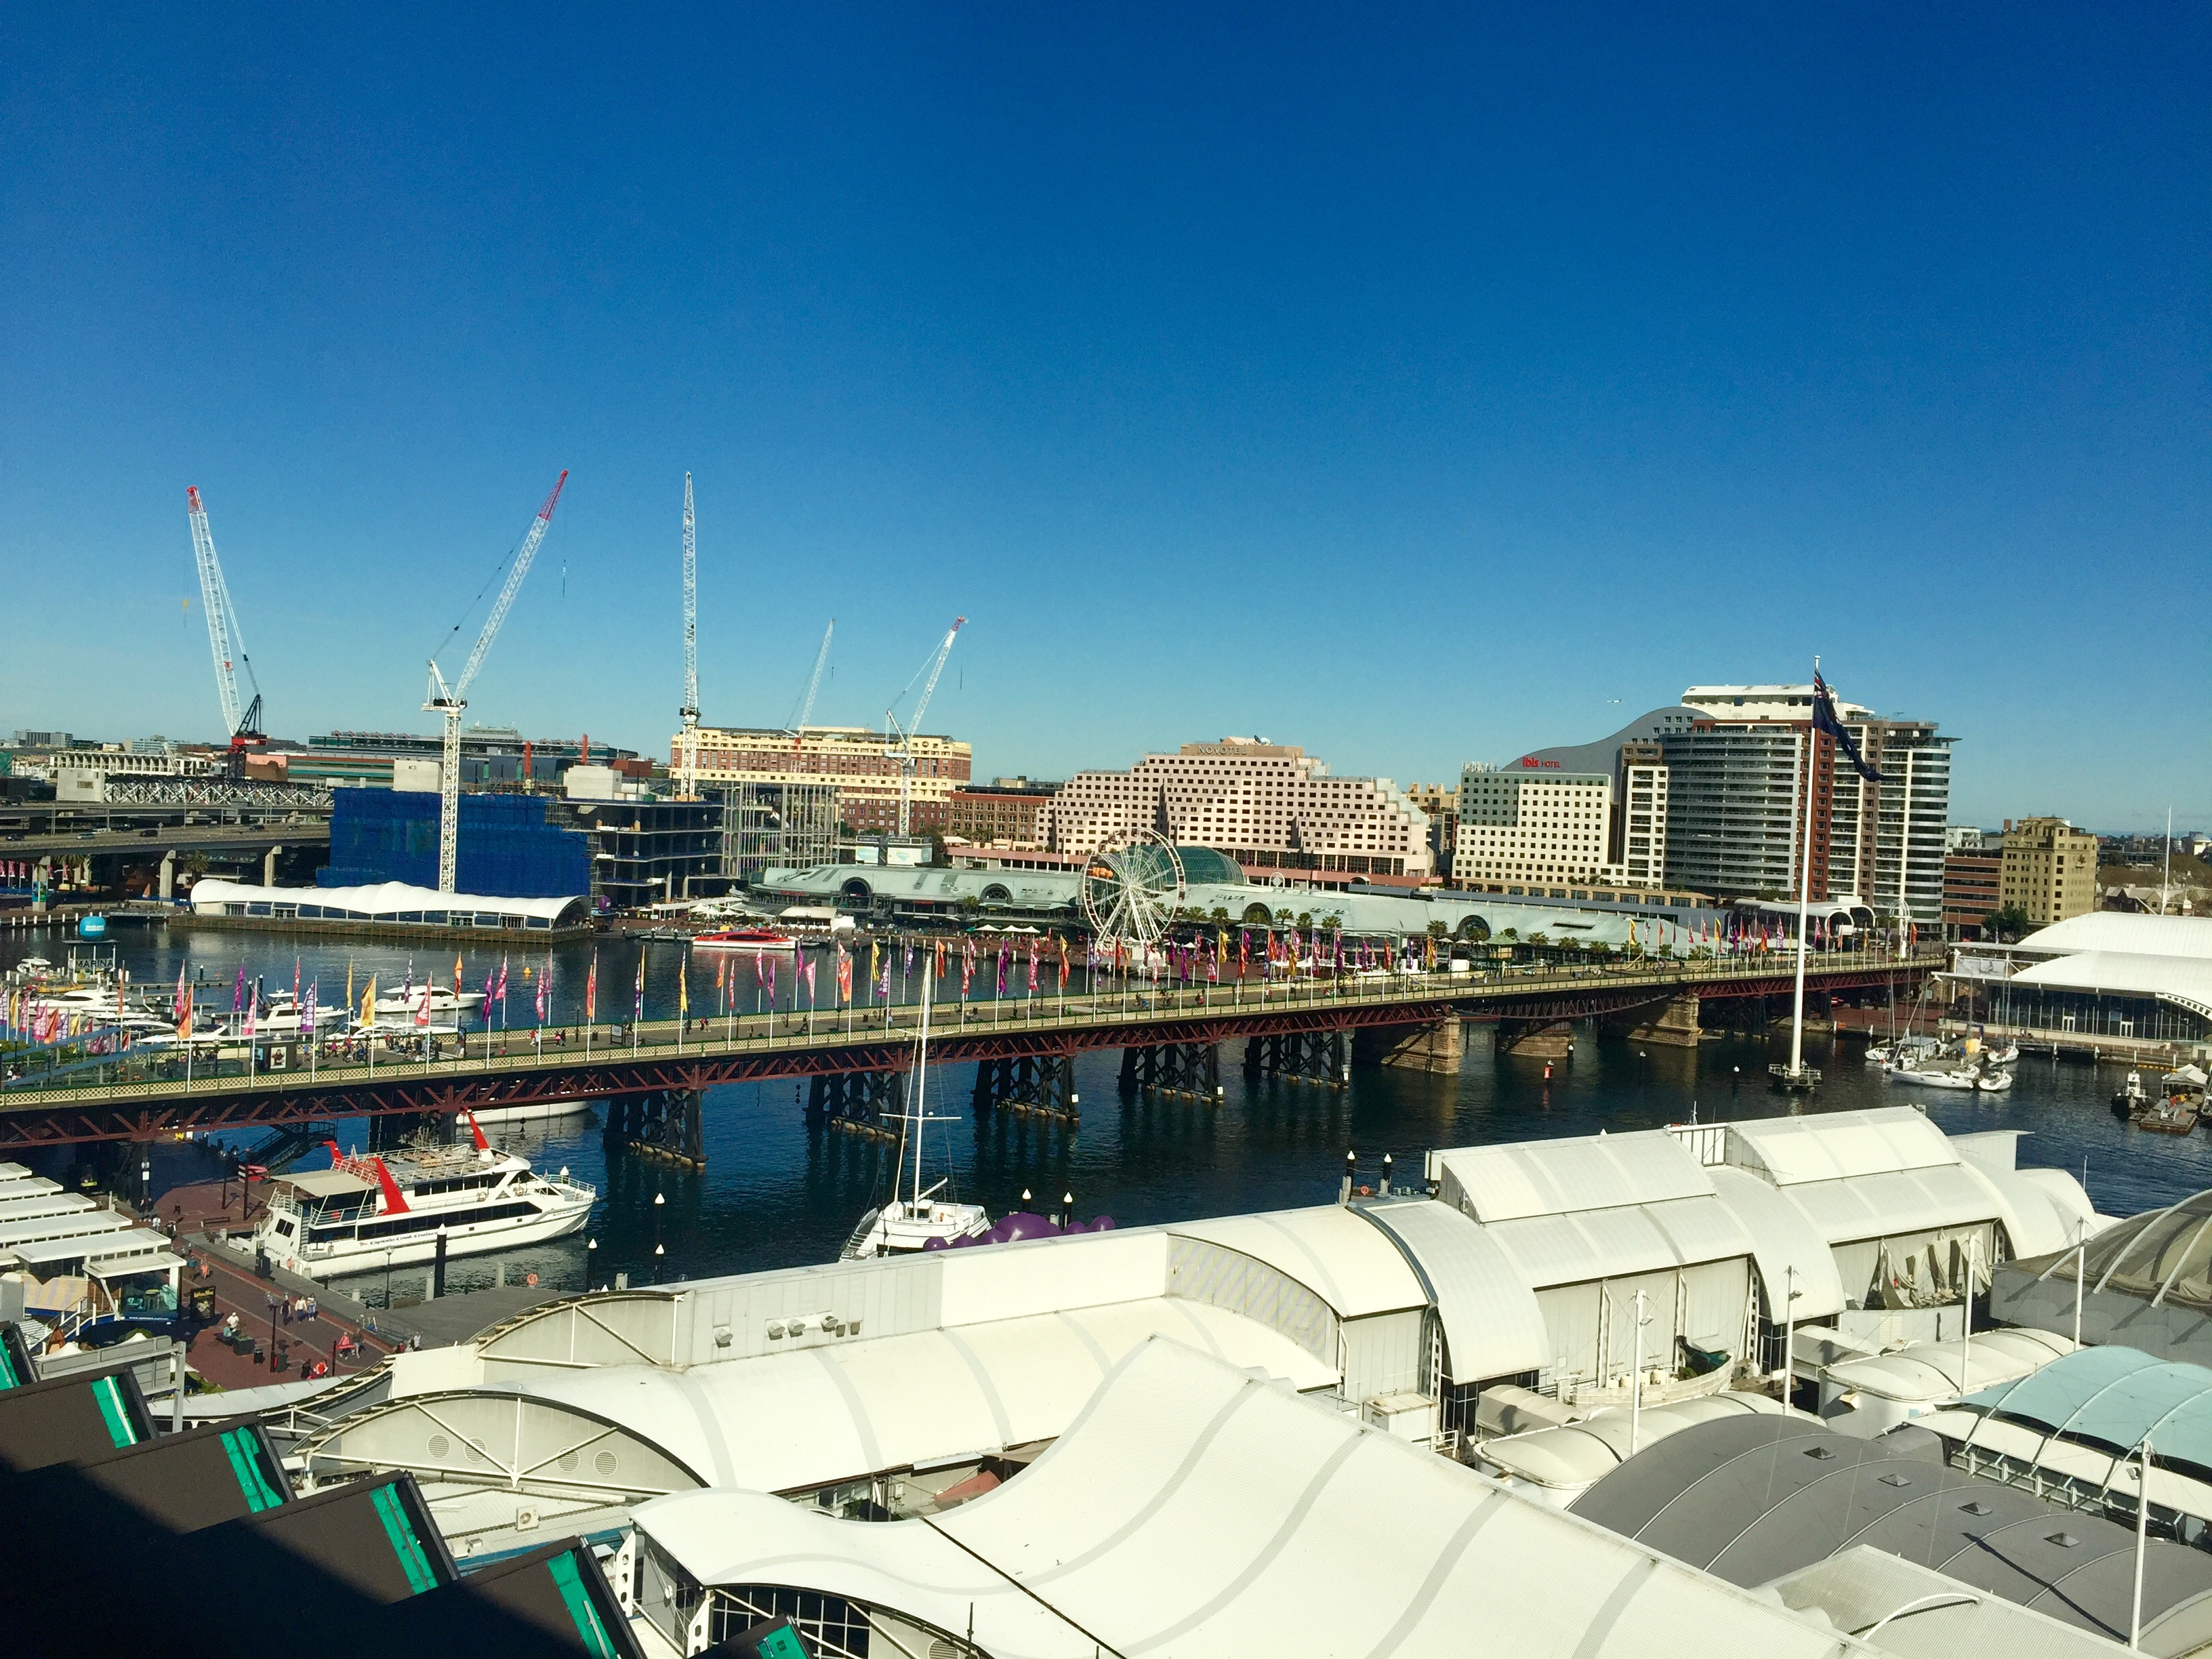 Pyrmont Bridge, as seen from the Four Points Sheraton Hotel